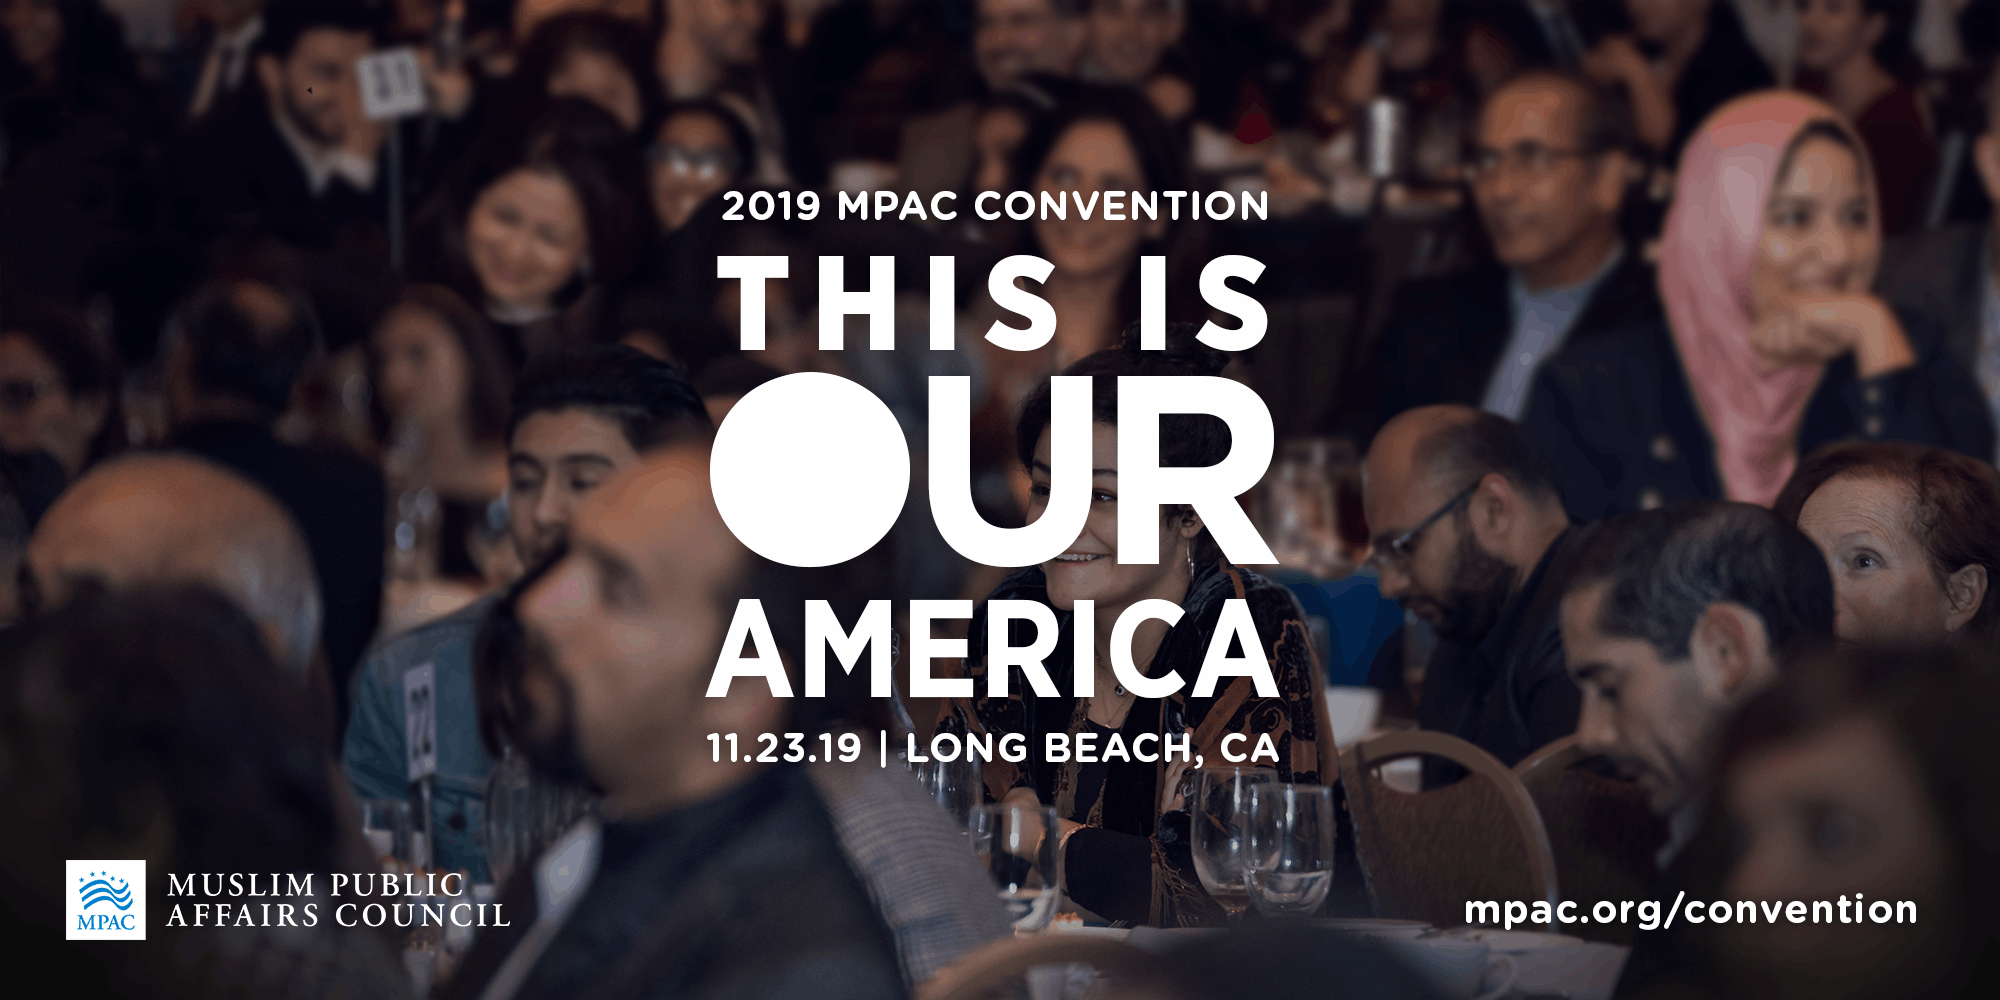 My Thoughts on The 2019 Muslim Public Affairs Council Annual Convention